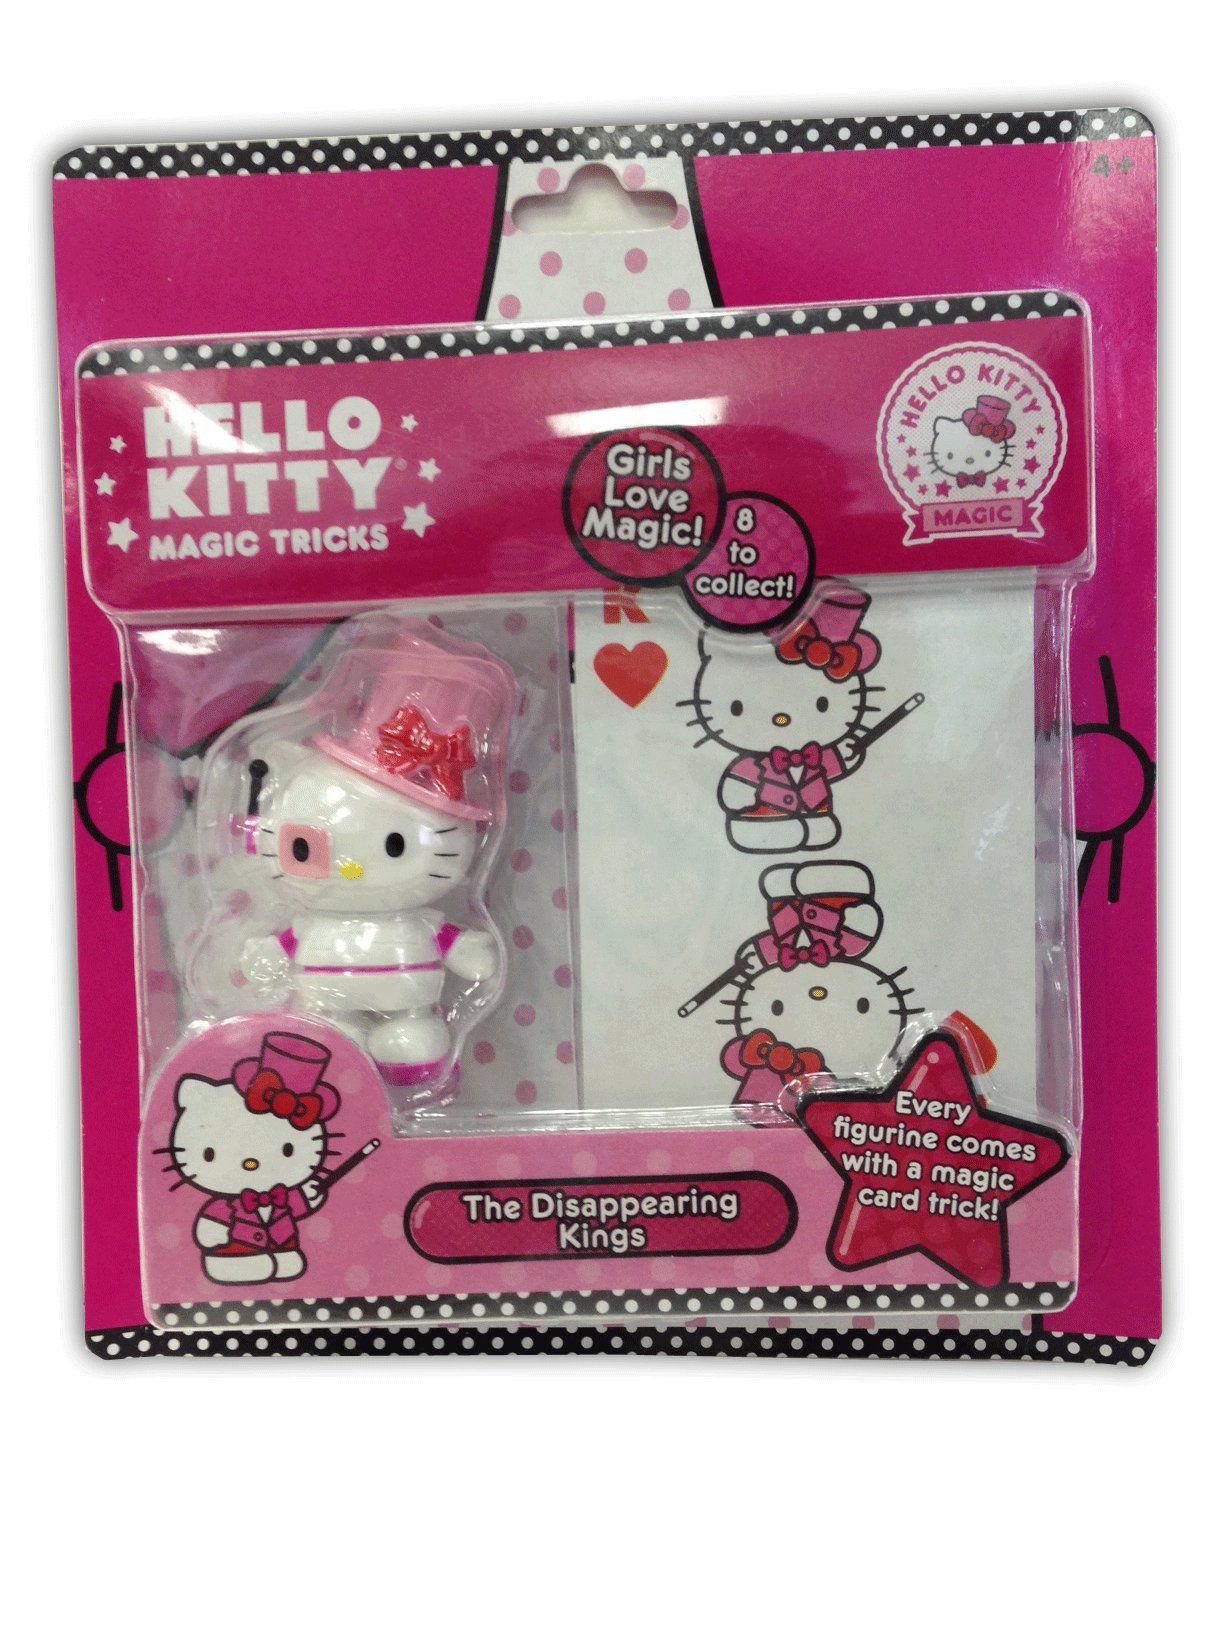 Hello Kitty Magic Disappearing Kings Magic Card Trick Super Cute Collectible Figurine by Hello Kitty (Image #2)